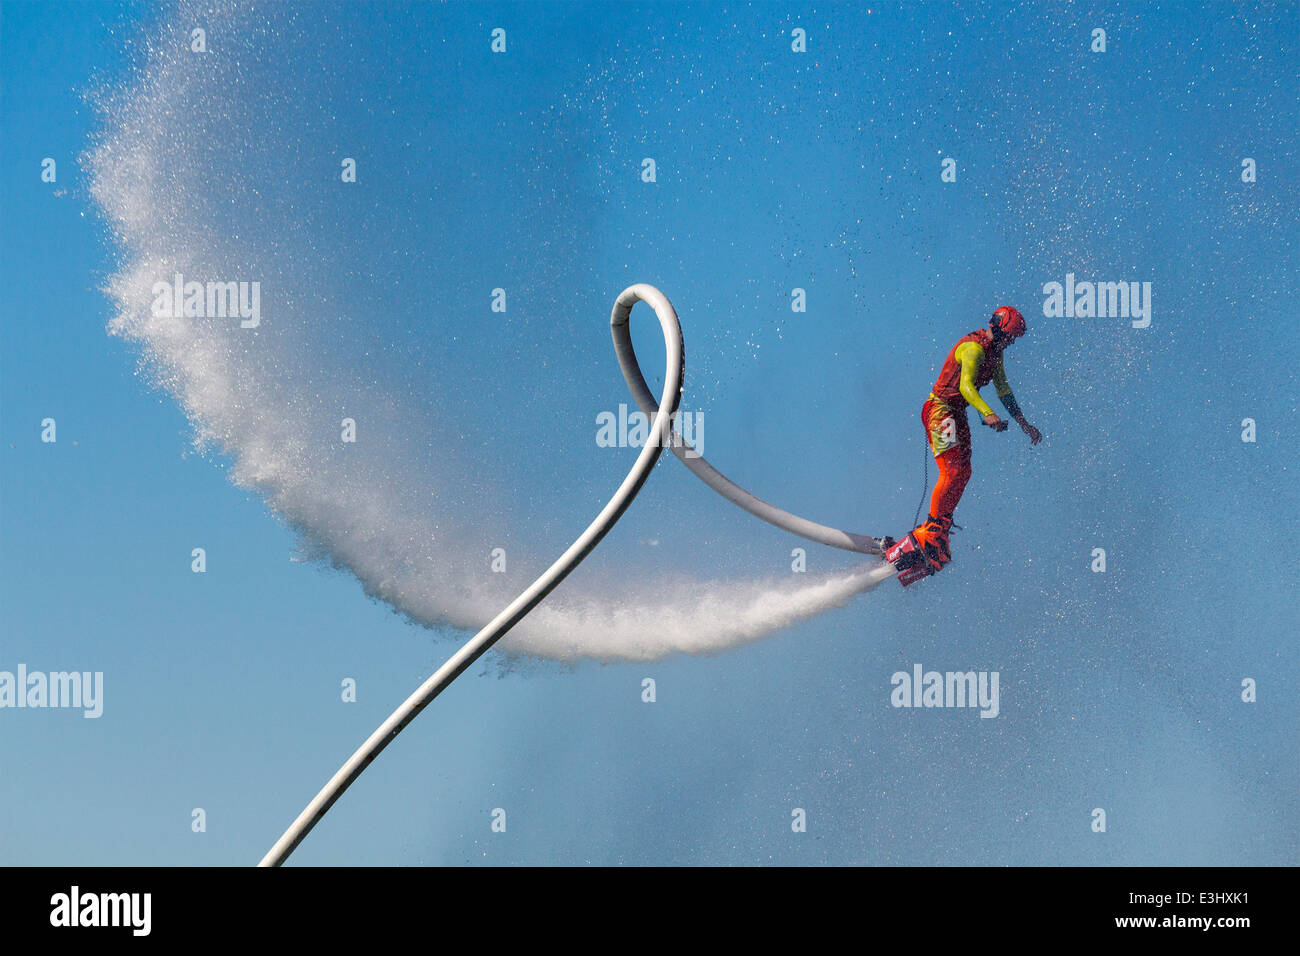 male-flyboarder-at-the-north-american-flyboard-championships-in-toronto-E3HXK1.jpg